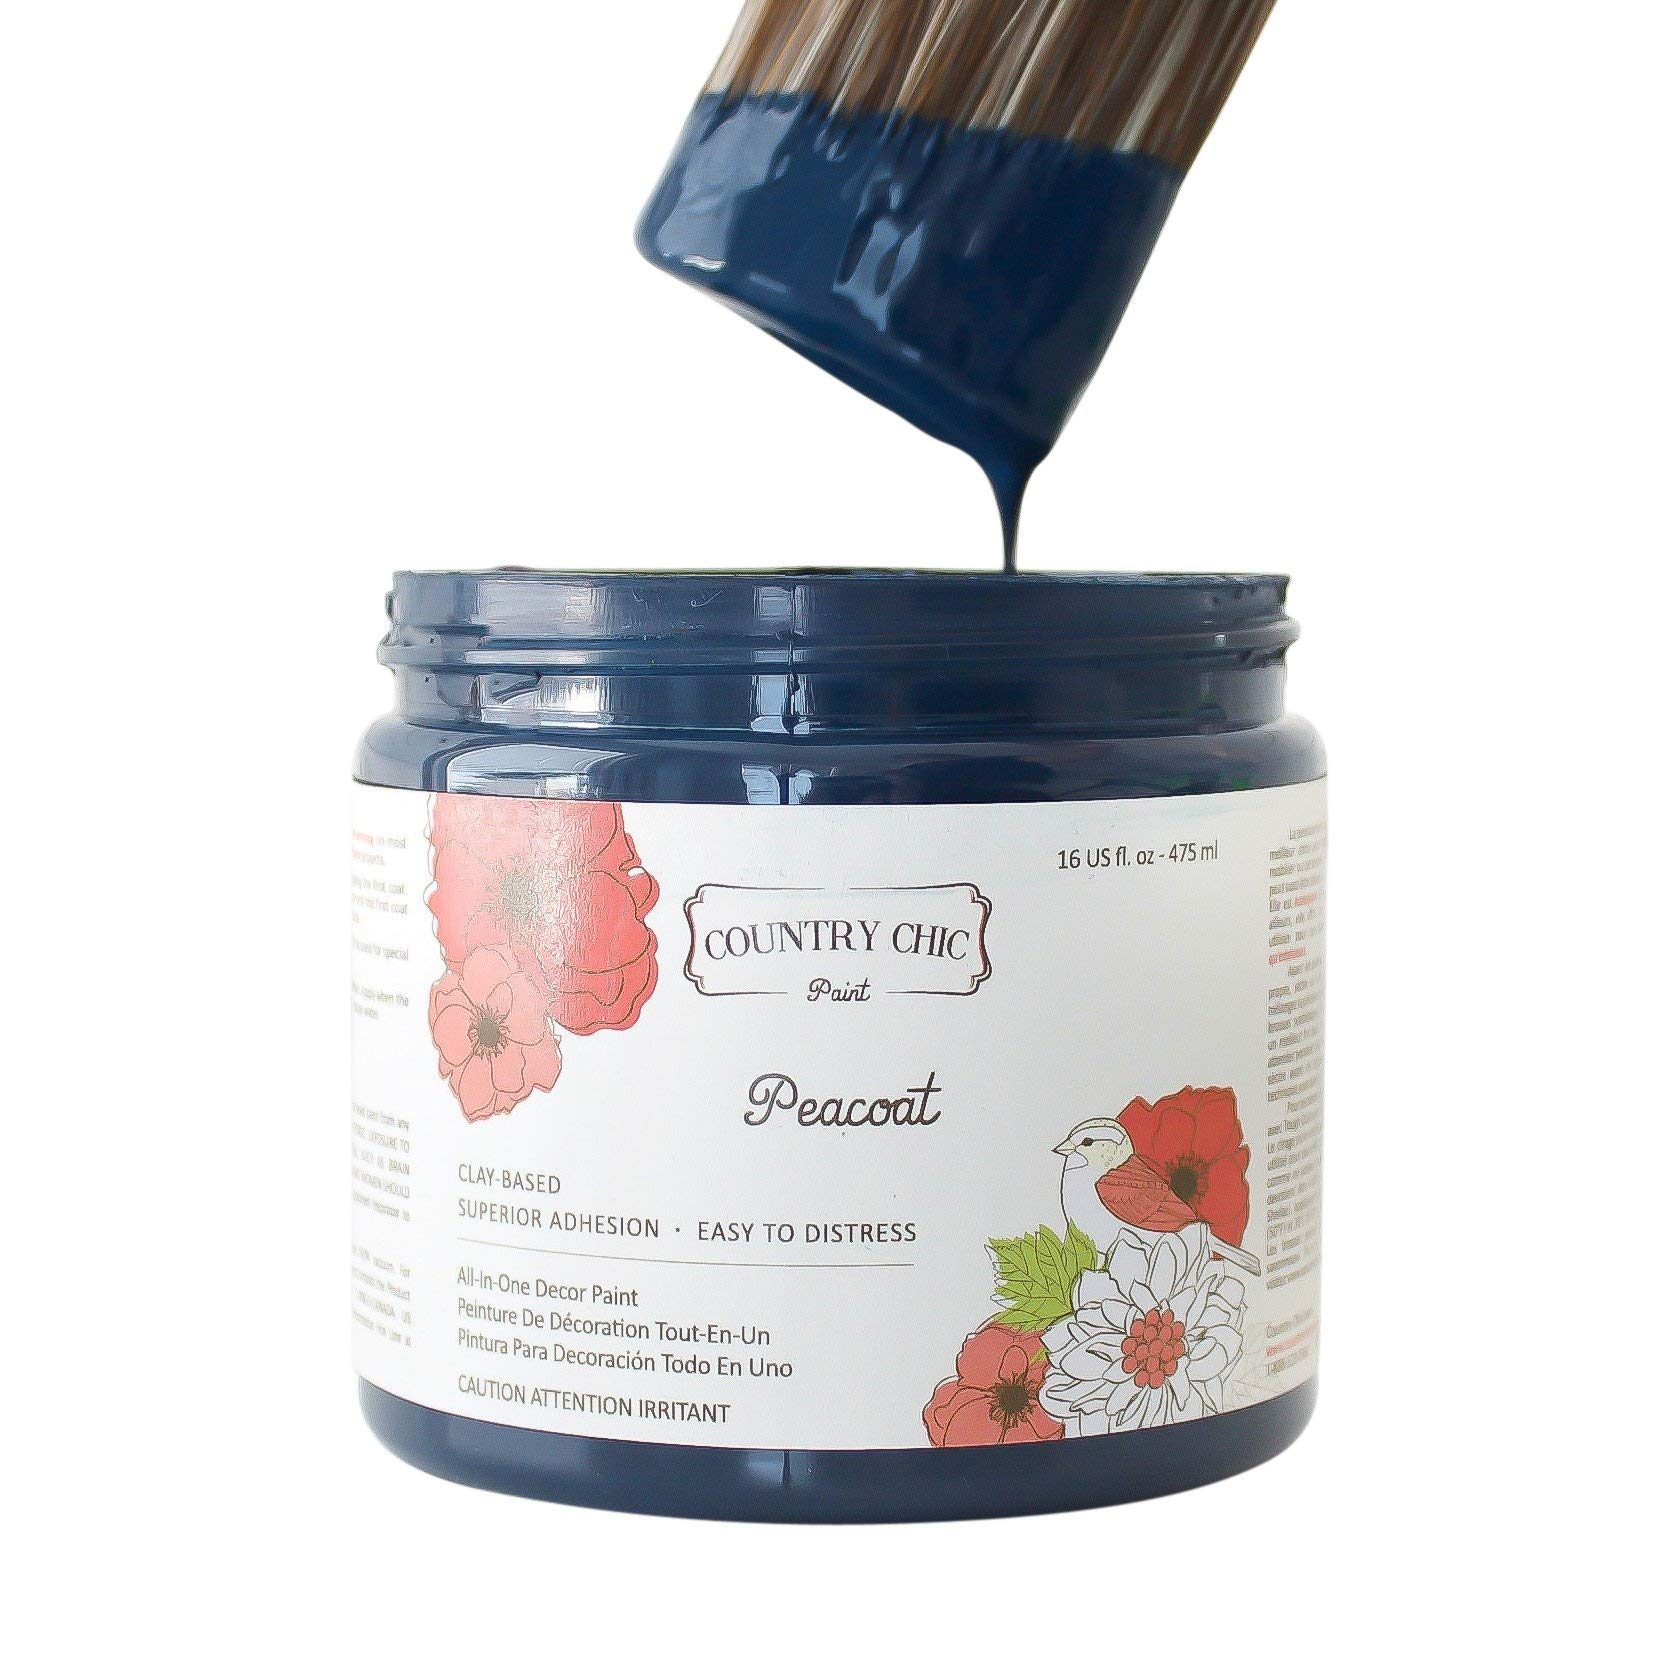 Chalk Style Paint - for Furniture, Home Decor, Crafts - Eco-Friendly - All-in-One - No Wax Needed (Peacoat [Navy Blue], Quart (32 oz))